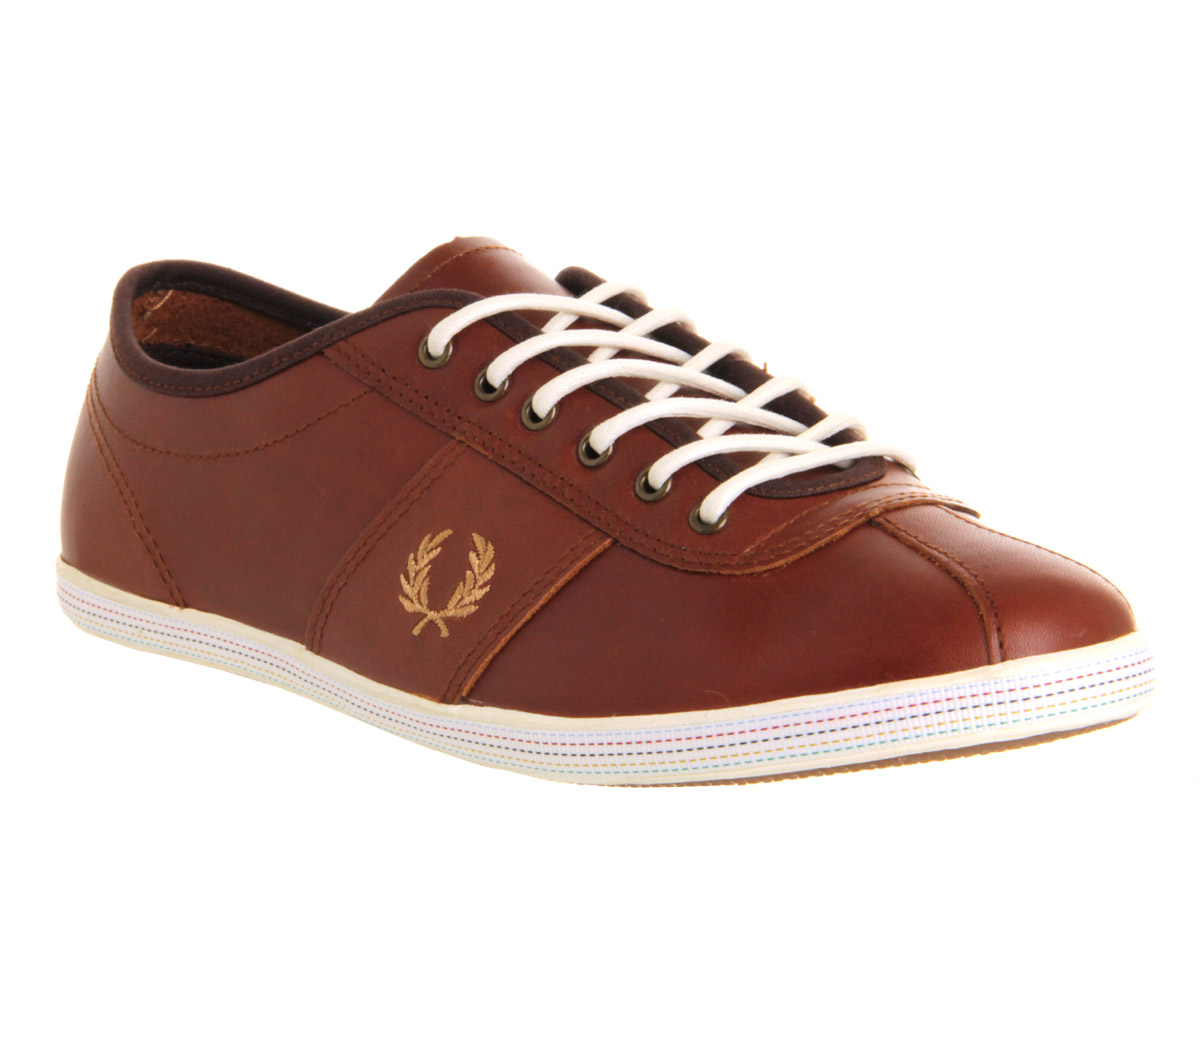 Fred Perry Hayes BRADLEY WIGGINS CHOCOLATE BRASS LEATHER Trainers Shoes   eBay